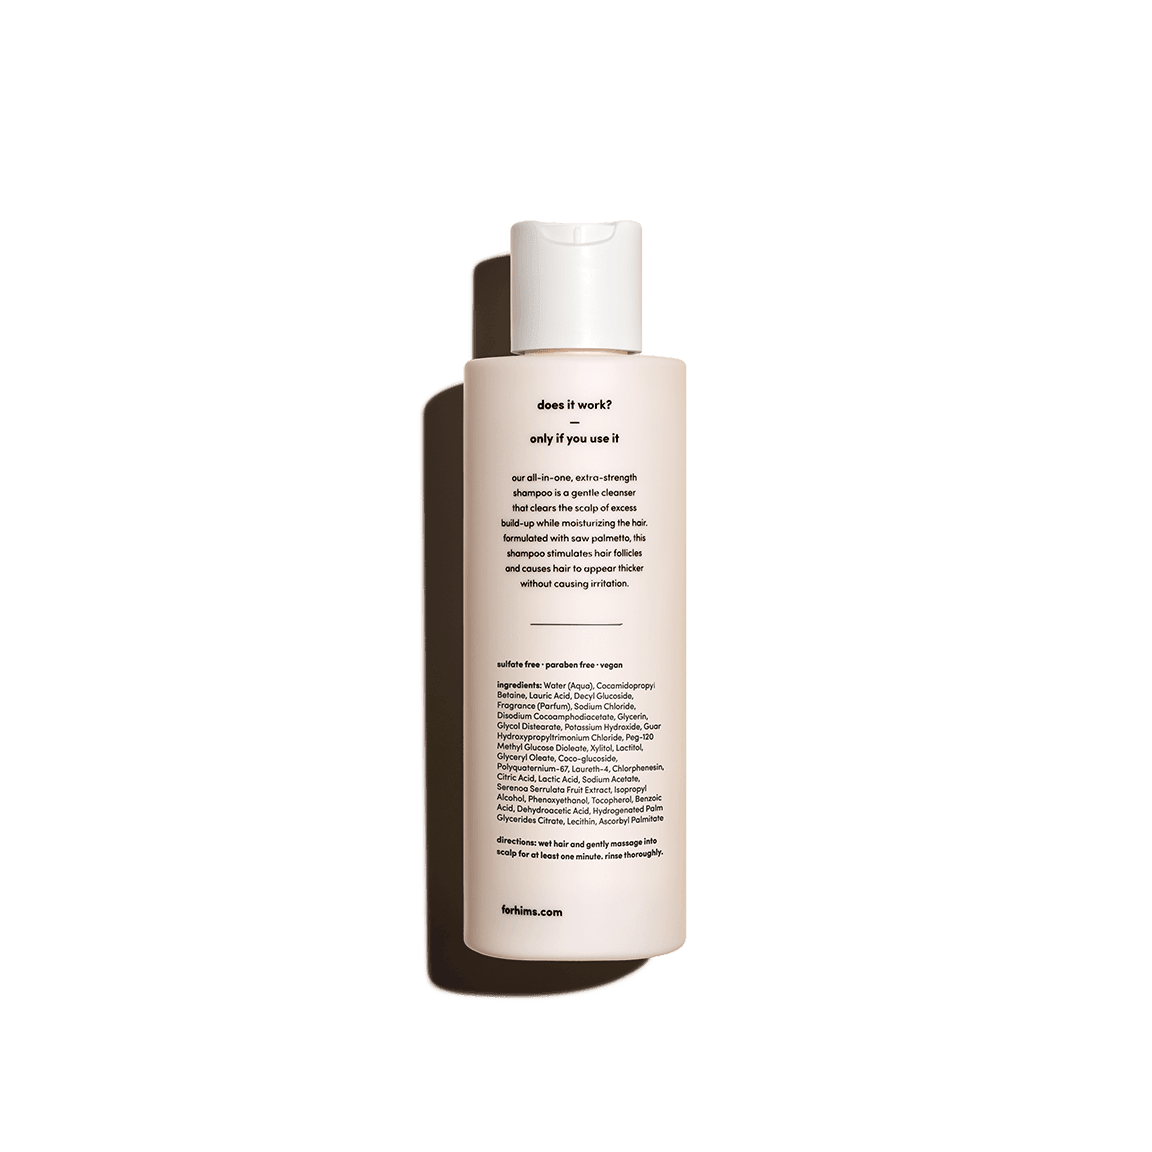 Hair Loss Shampoo | Men's DHT Blocker Shampoo | hims